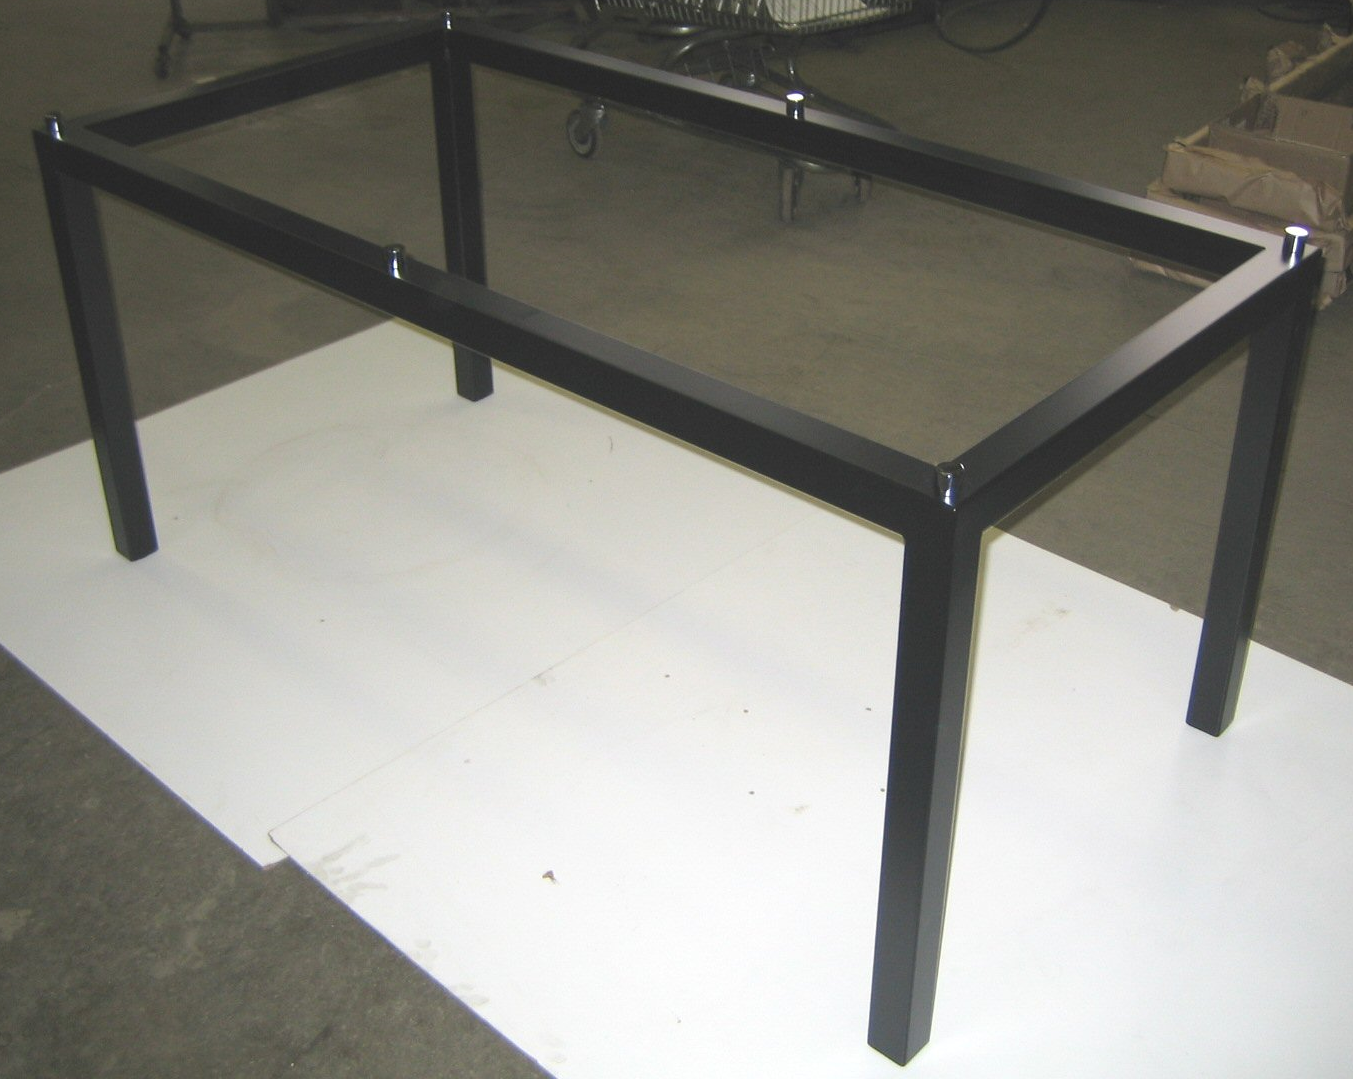 CUSTOM FRAME - GLASS TOP STAND-OFFS